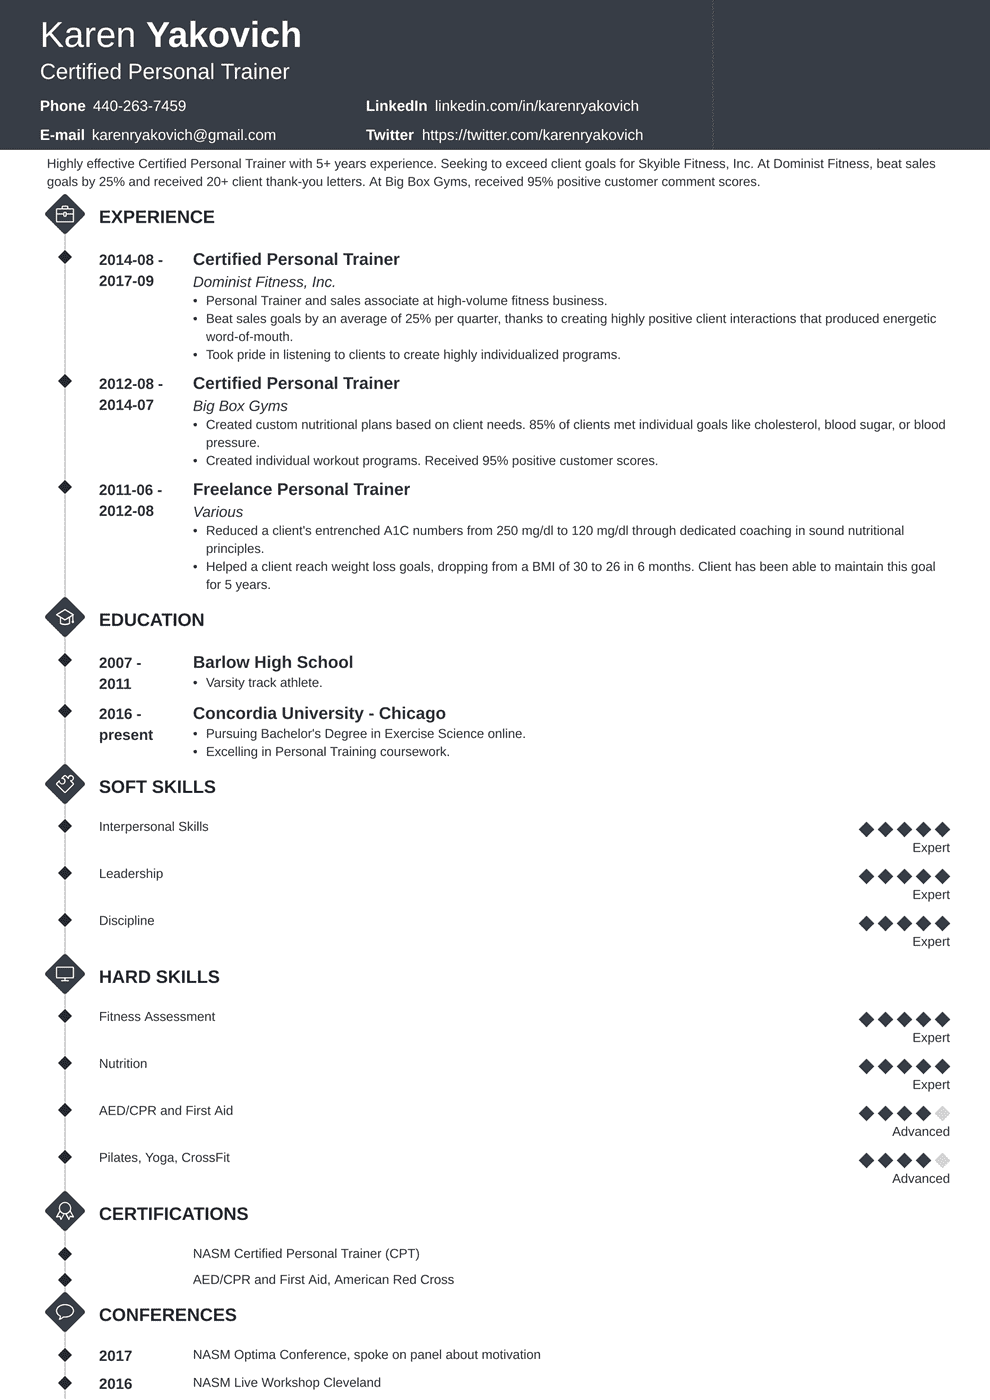 Personal Trainer Resume Example (Also for No Experience)